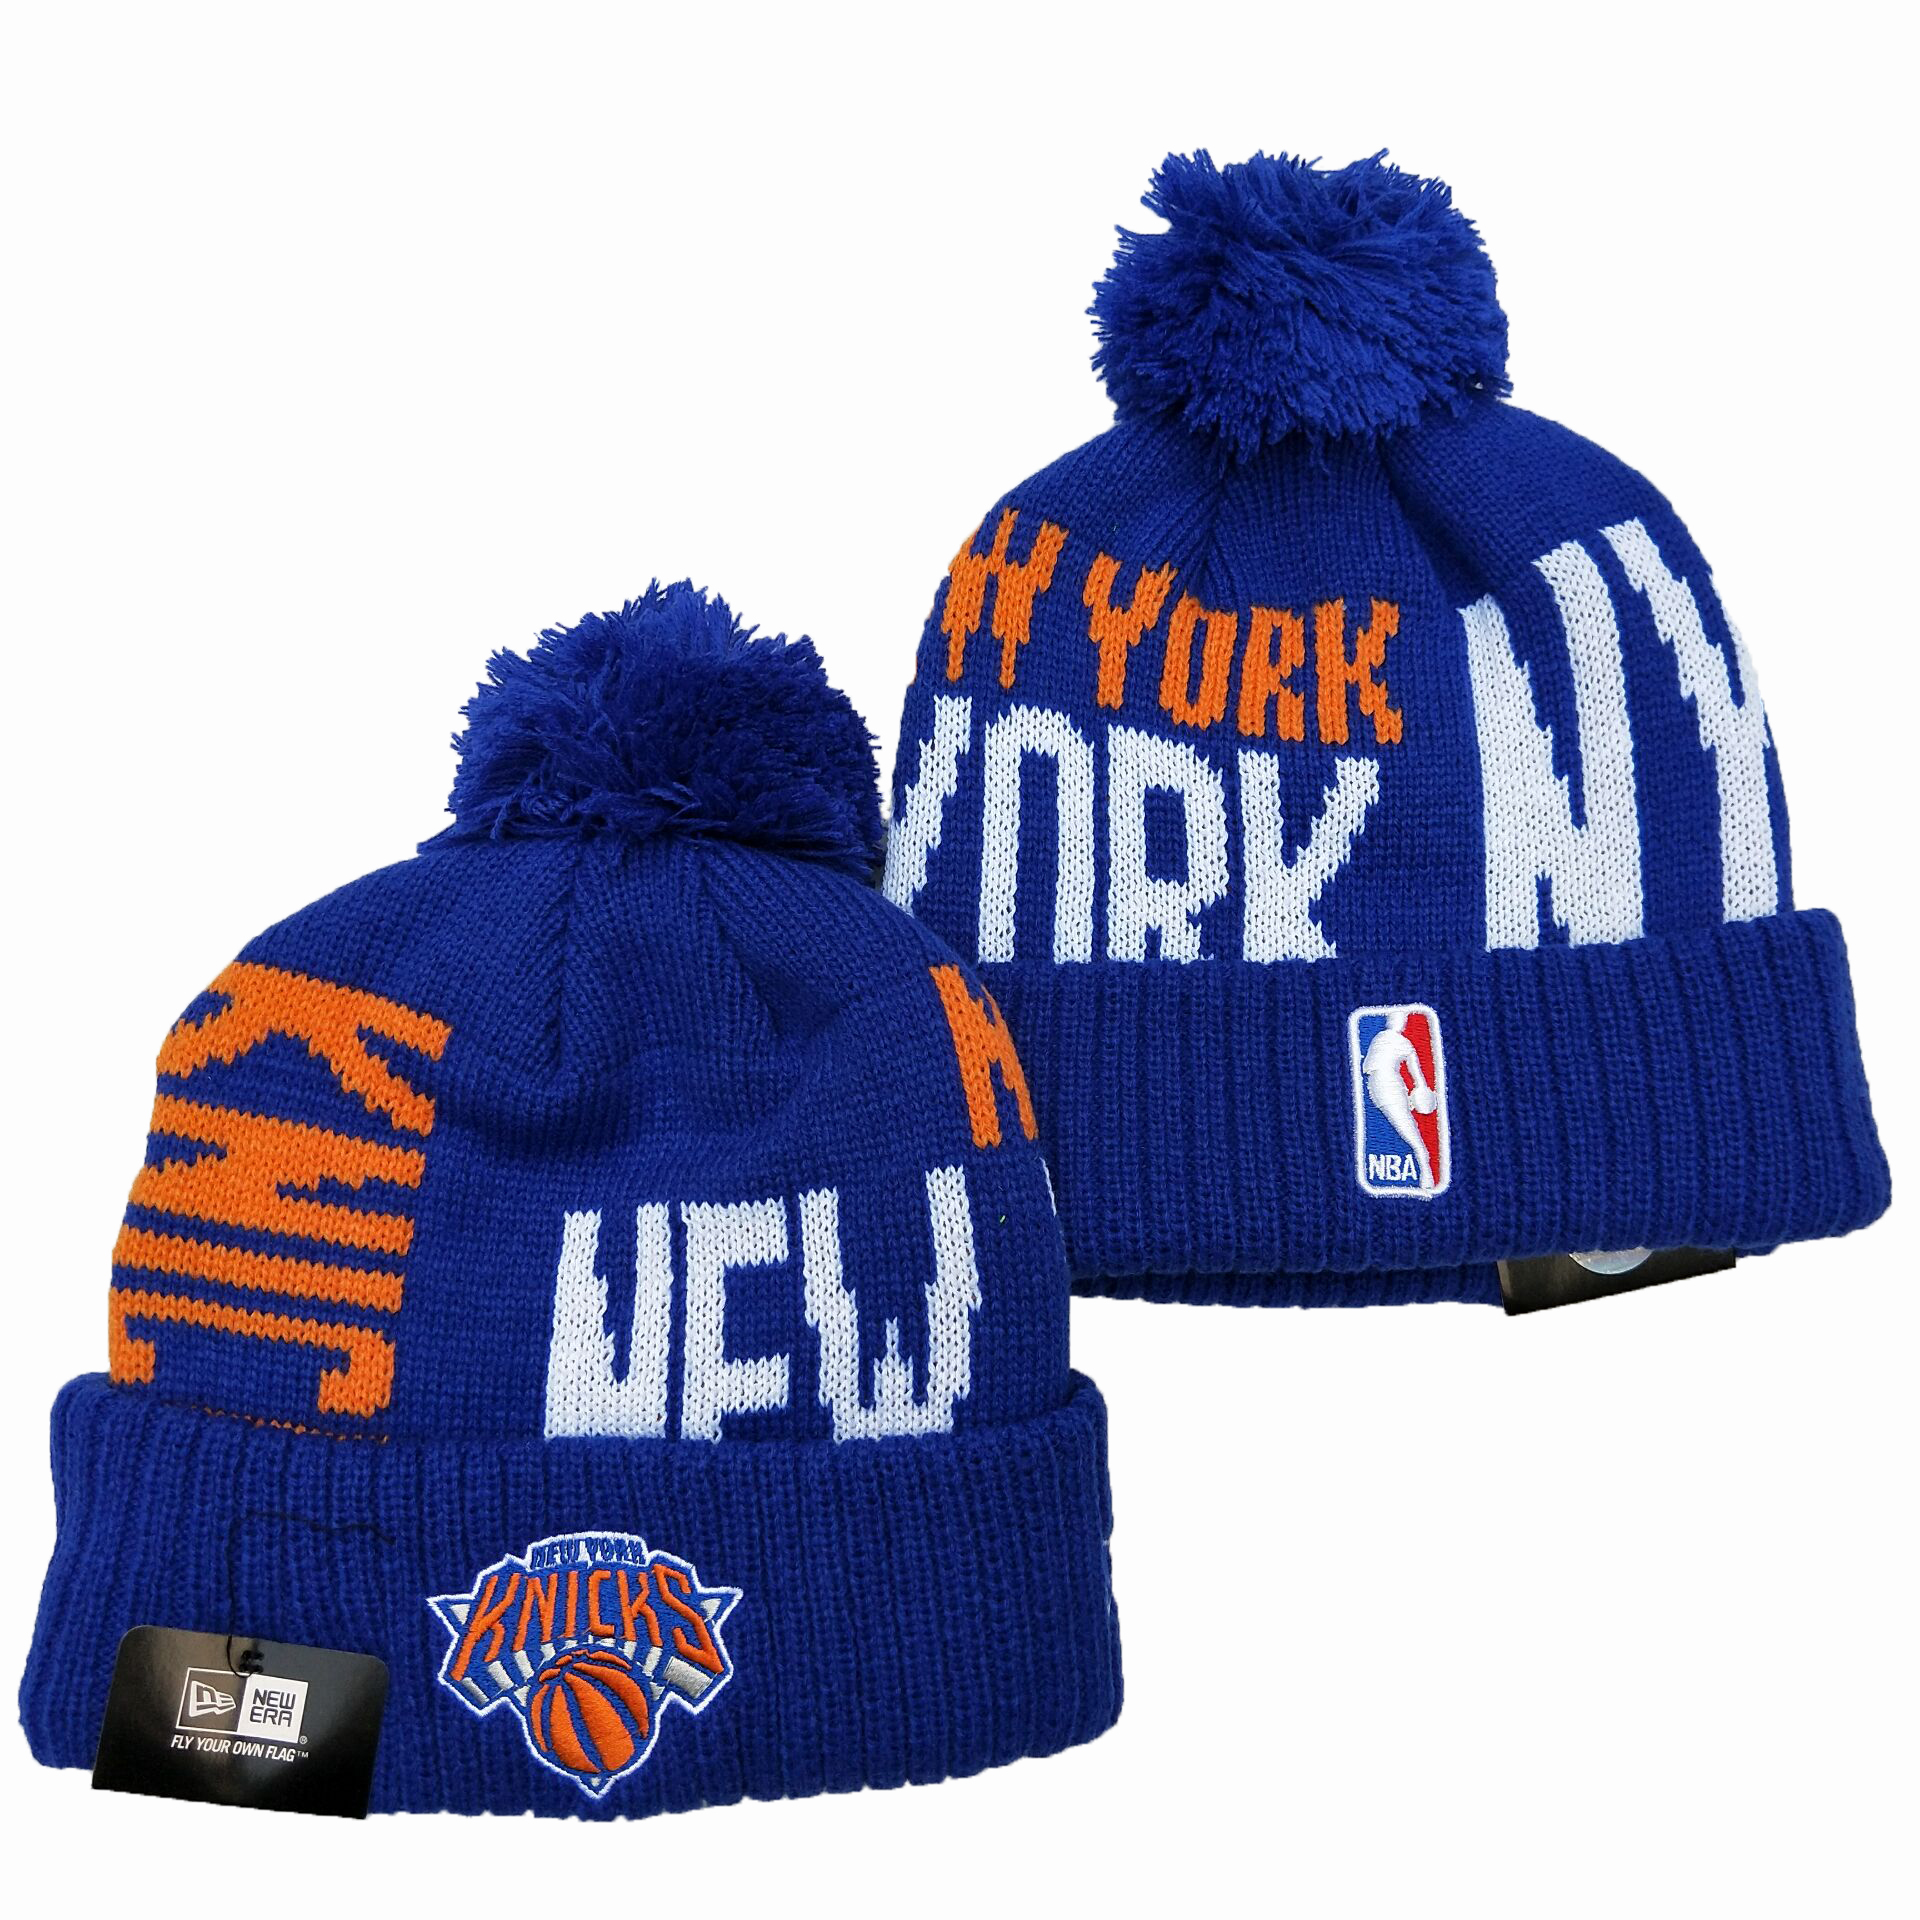 Knicks Team Logo Blue Pom Knit Hat YD